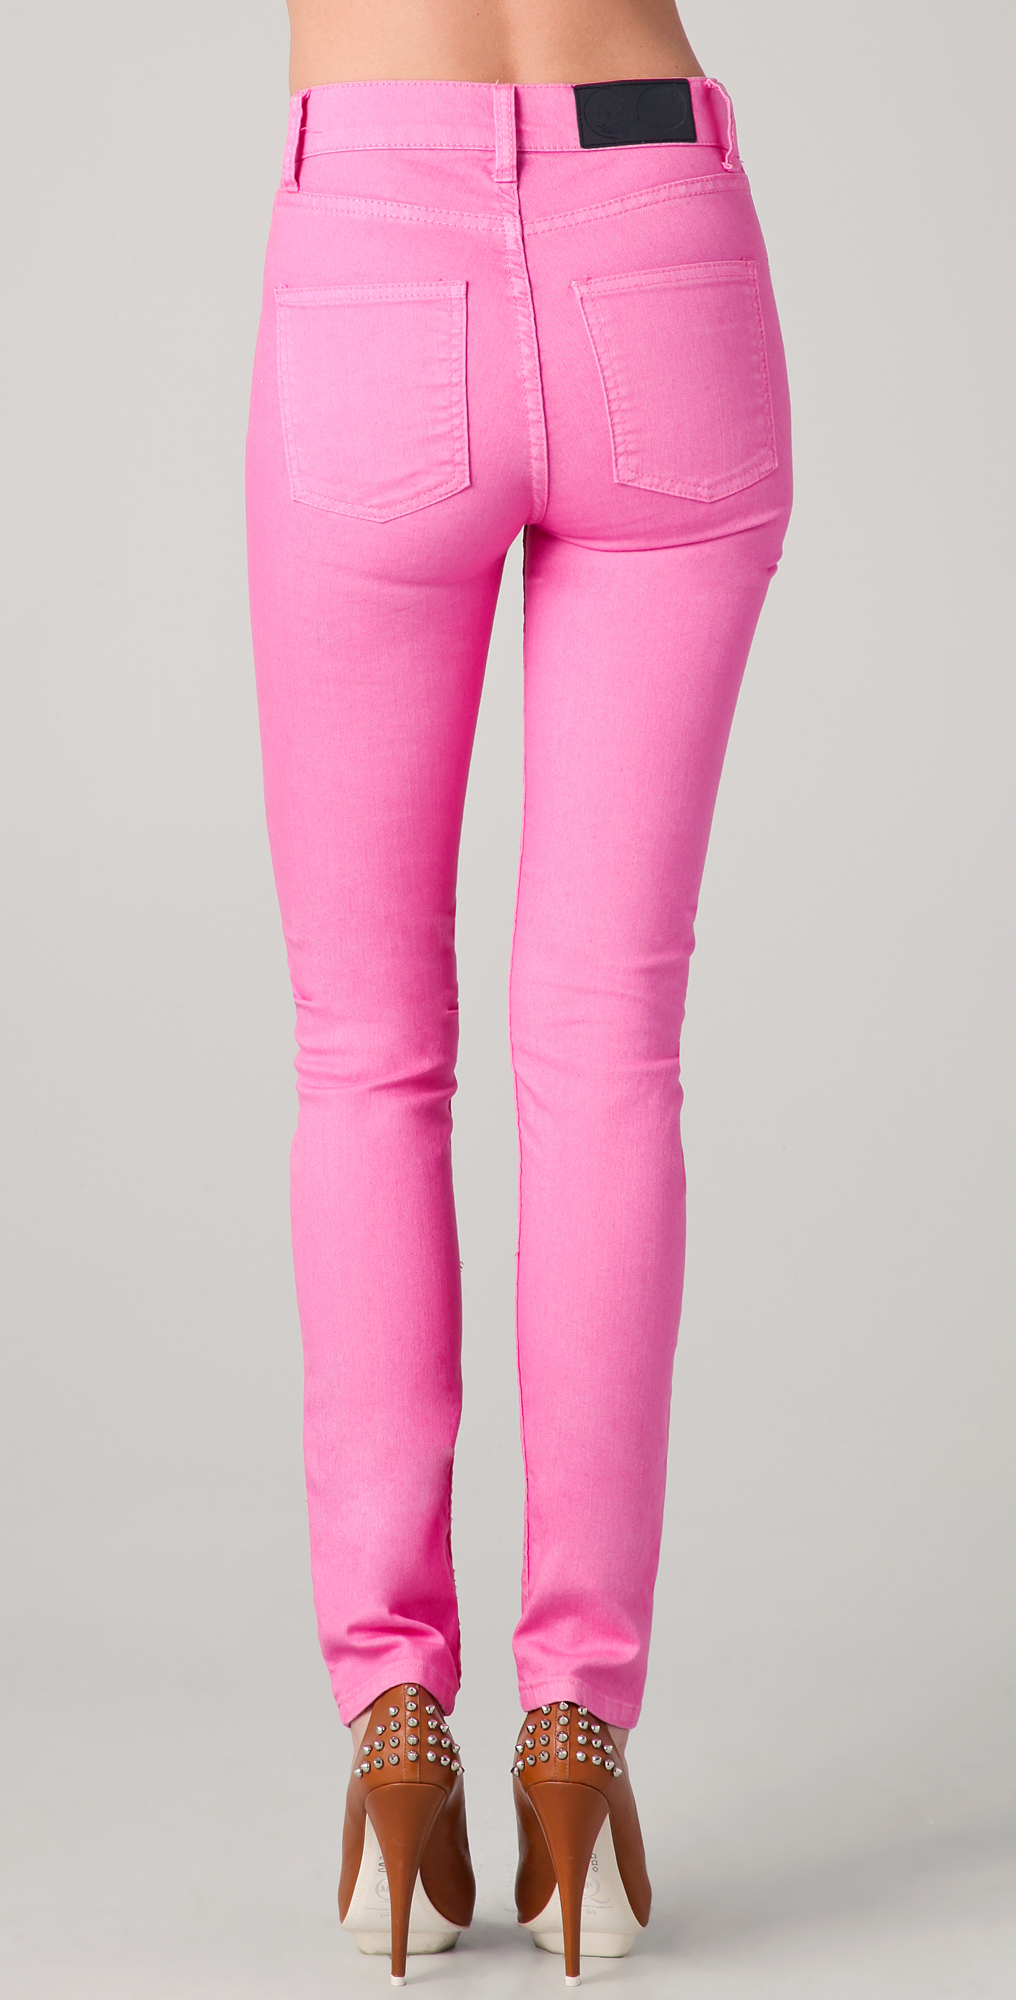 Buy Waisted High skinny jeans tumblr pictures pictures trends